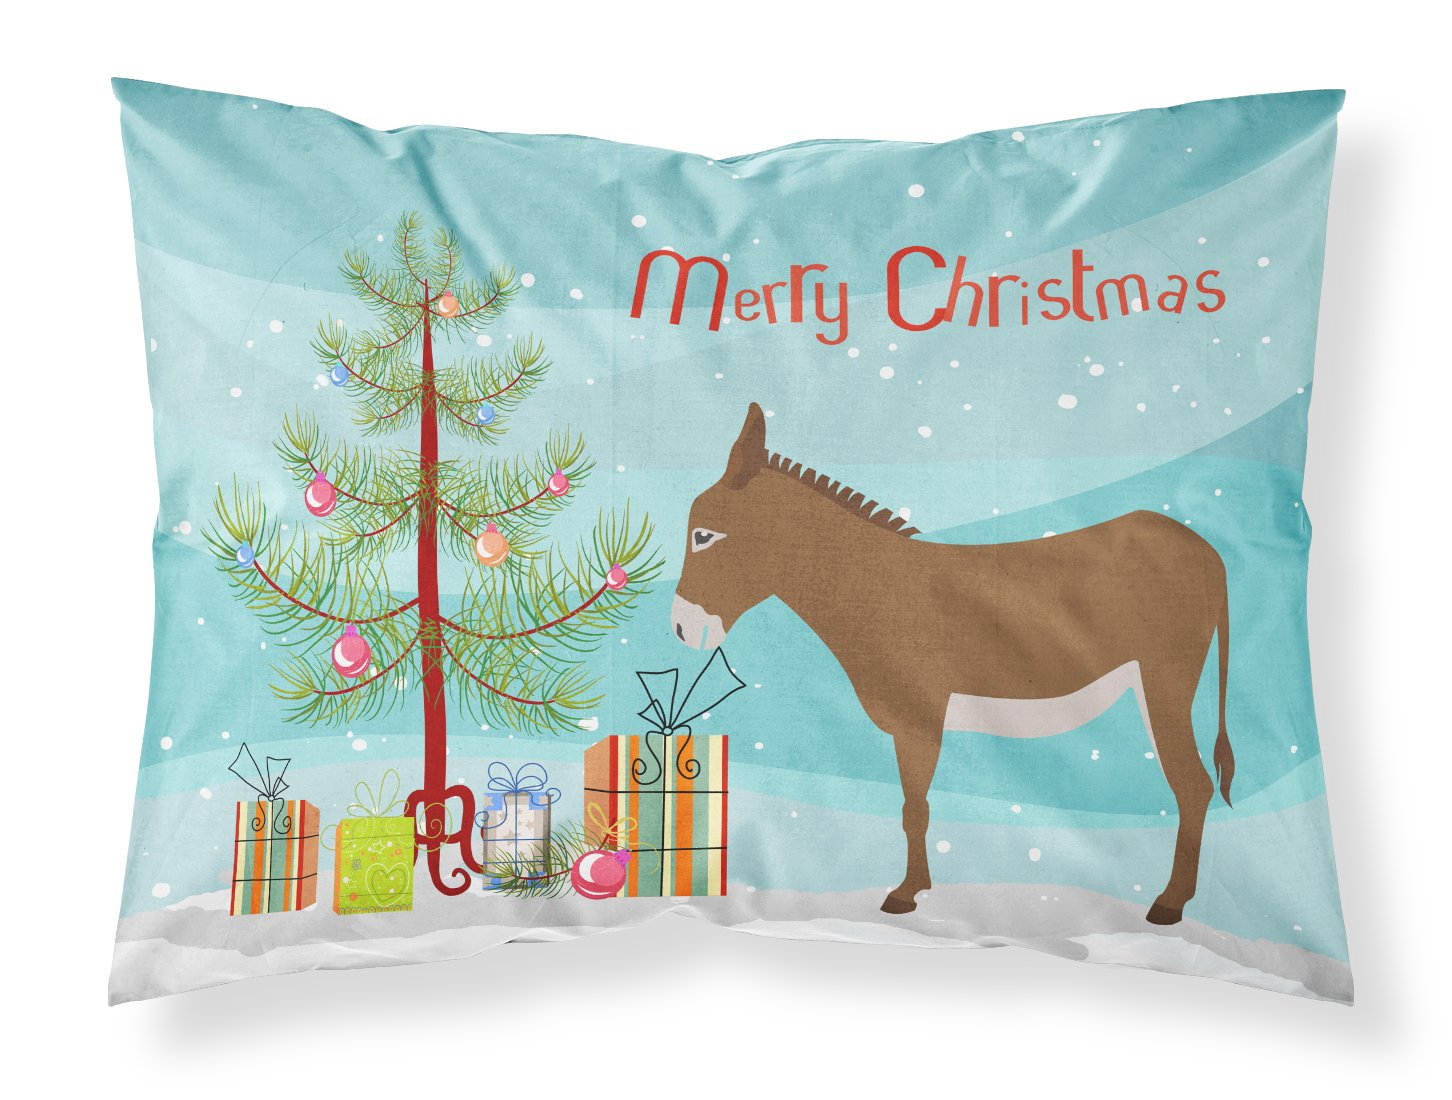 Cotentin Donkey Christmas Fabric Standard Pillowcase BB9216PILLOWCASE by Caroline's Treasures